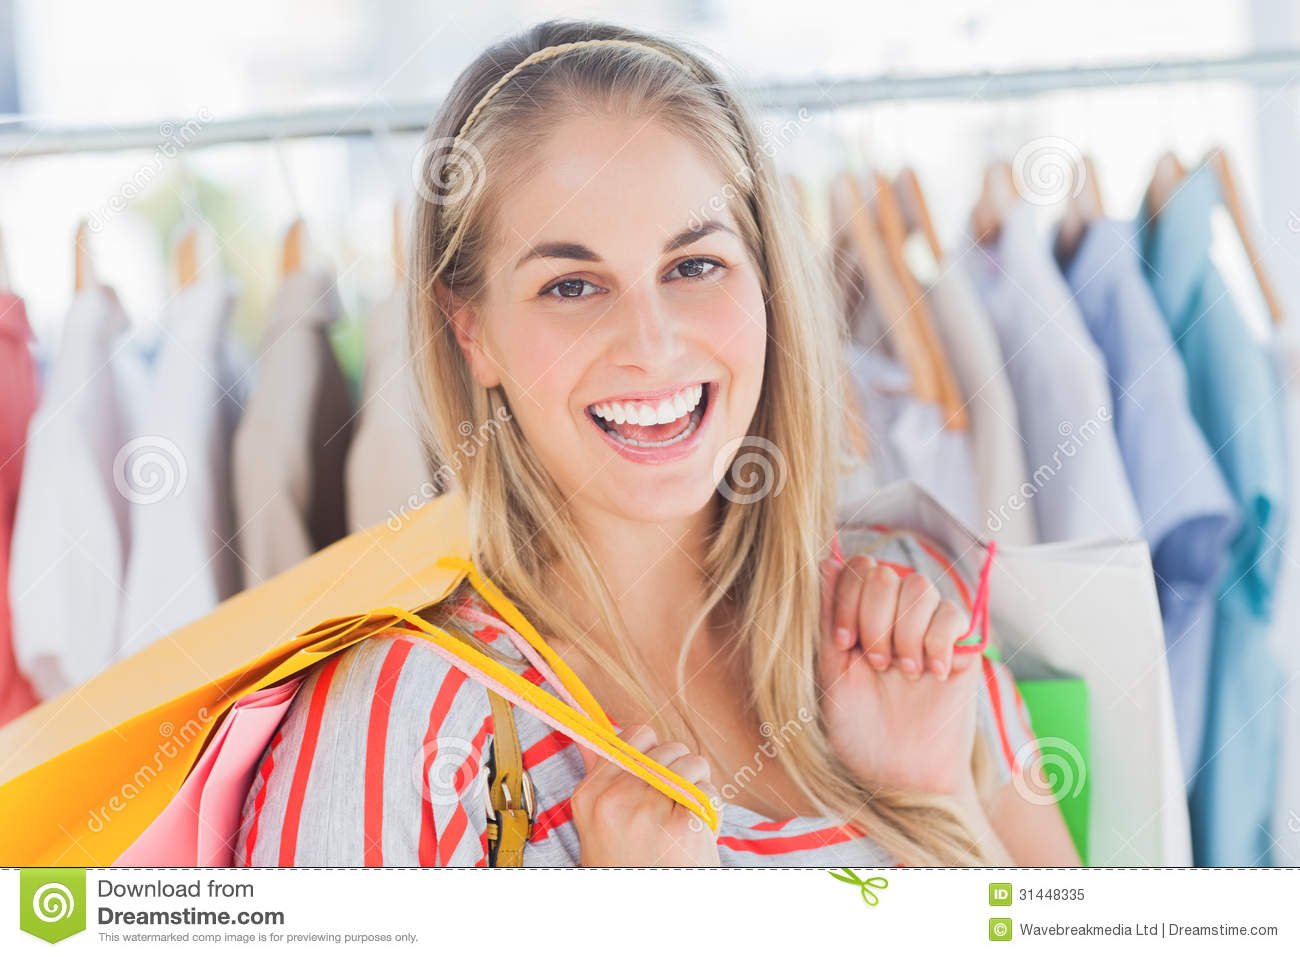 Midget clothing store   Online clothing stores